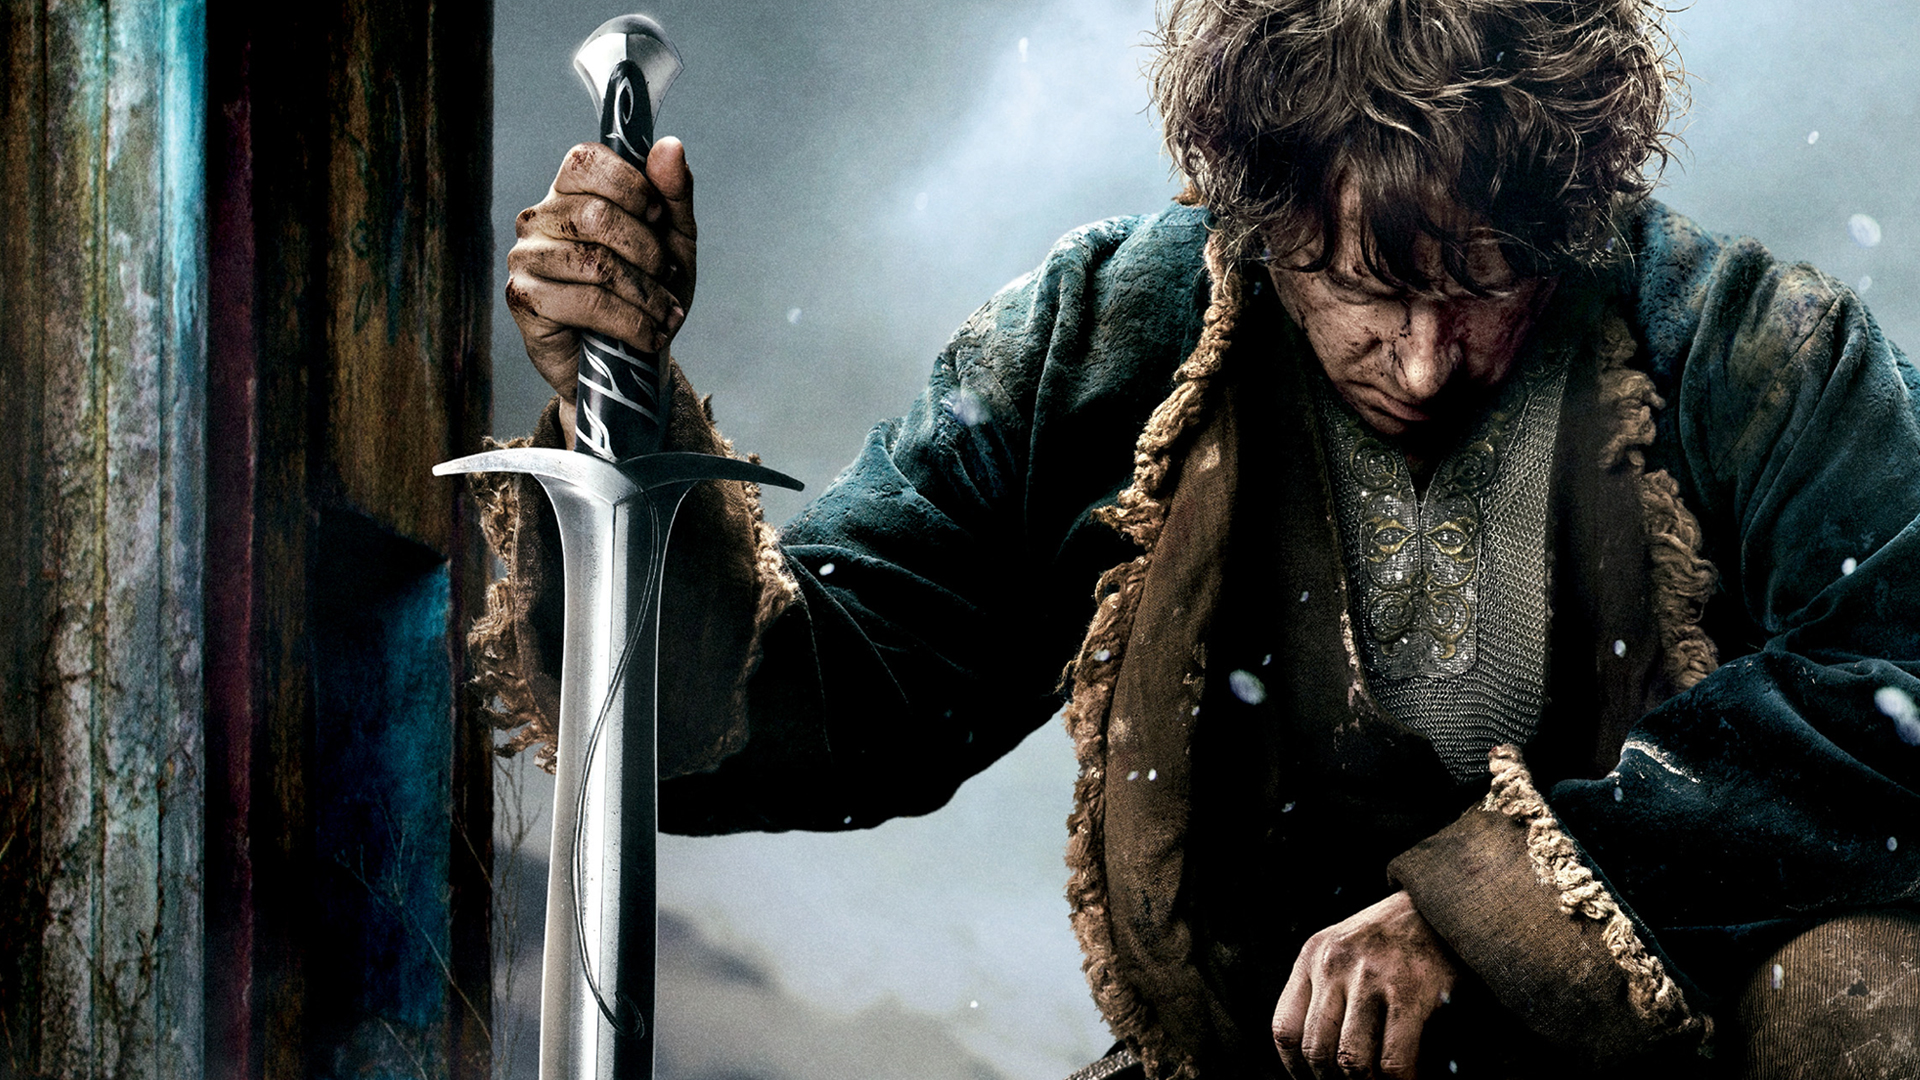 The Hobbit - The Battle of the Five Armies Review